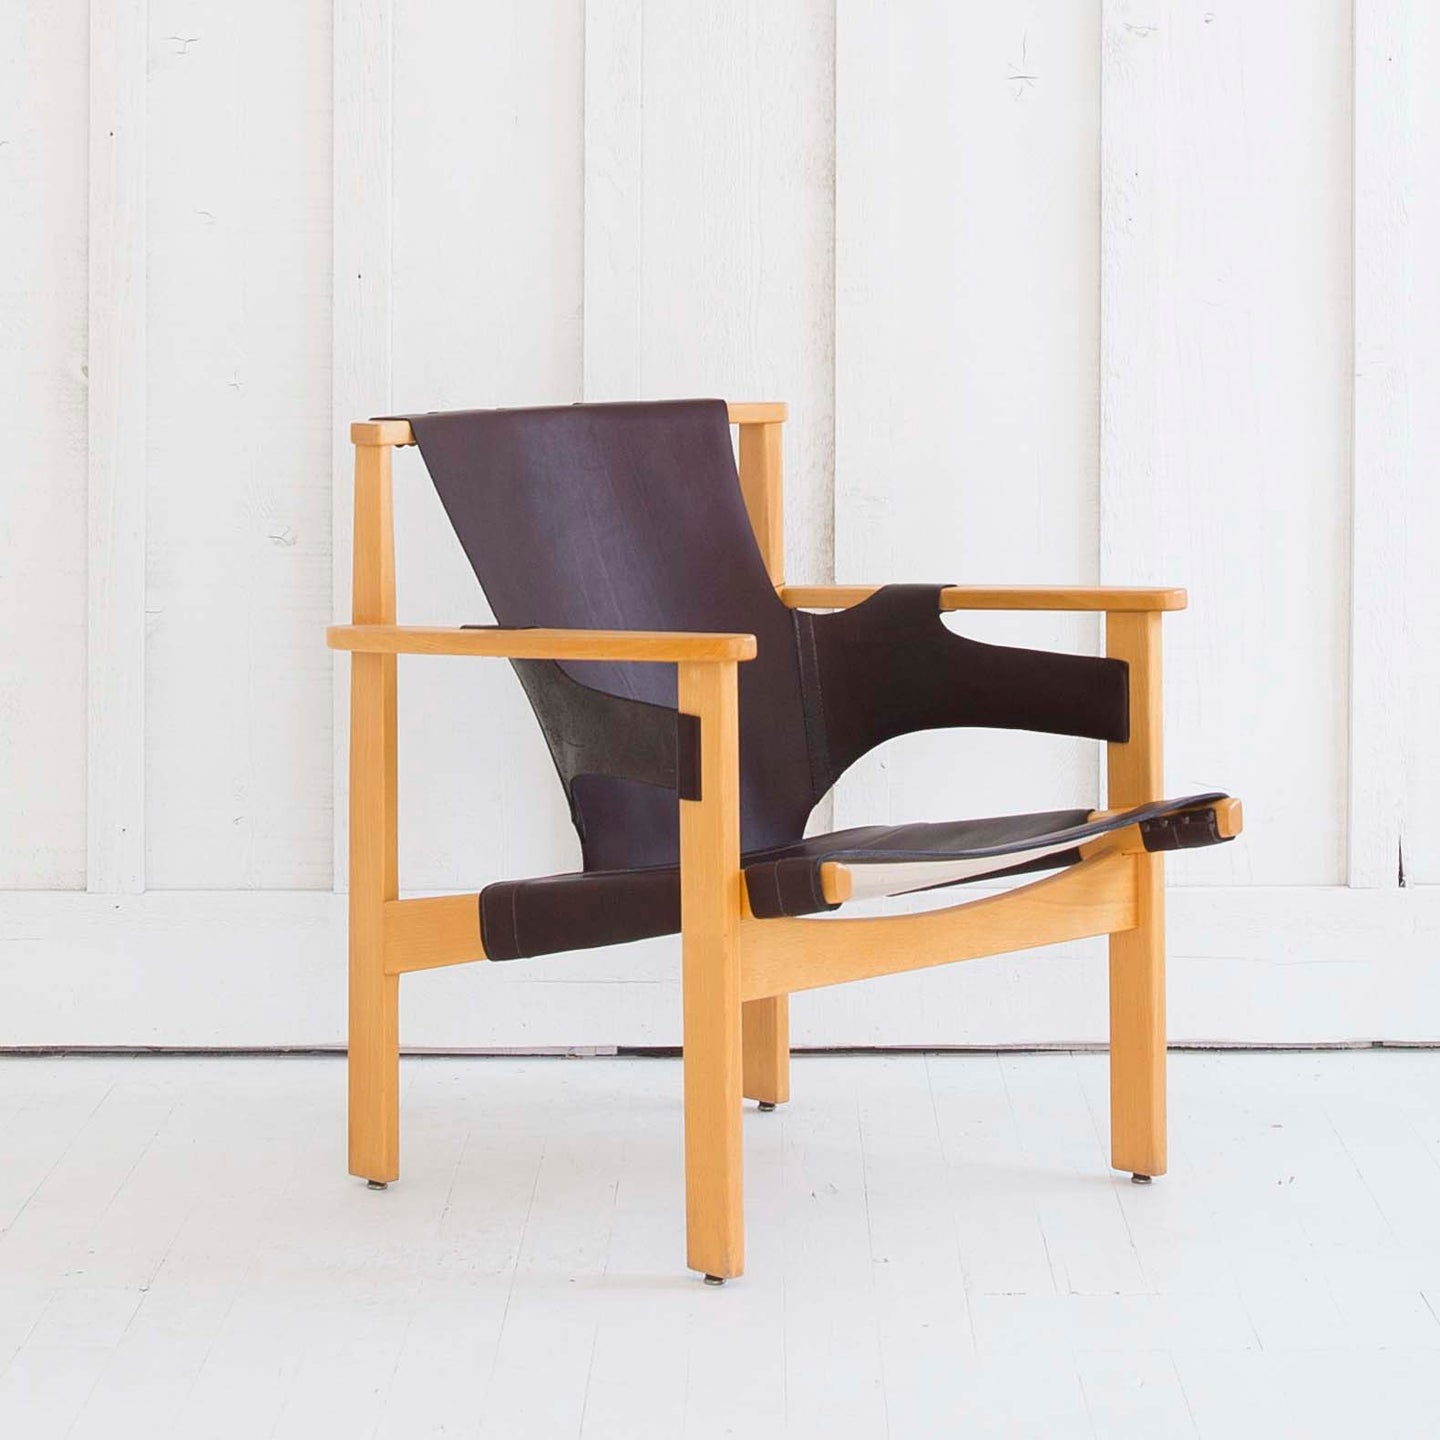 Carl-Axel Acking's Trienna Sling Chair